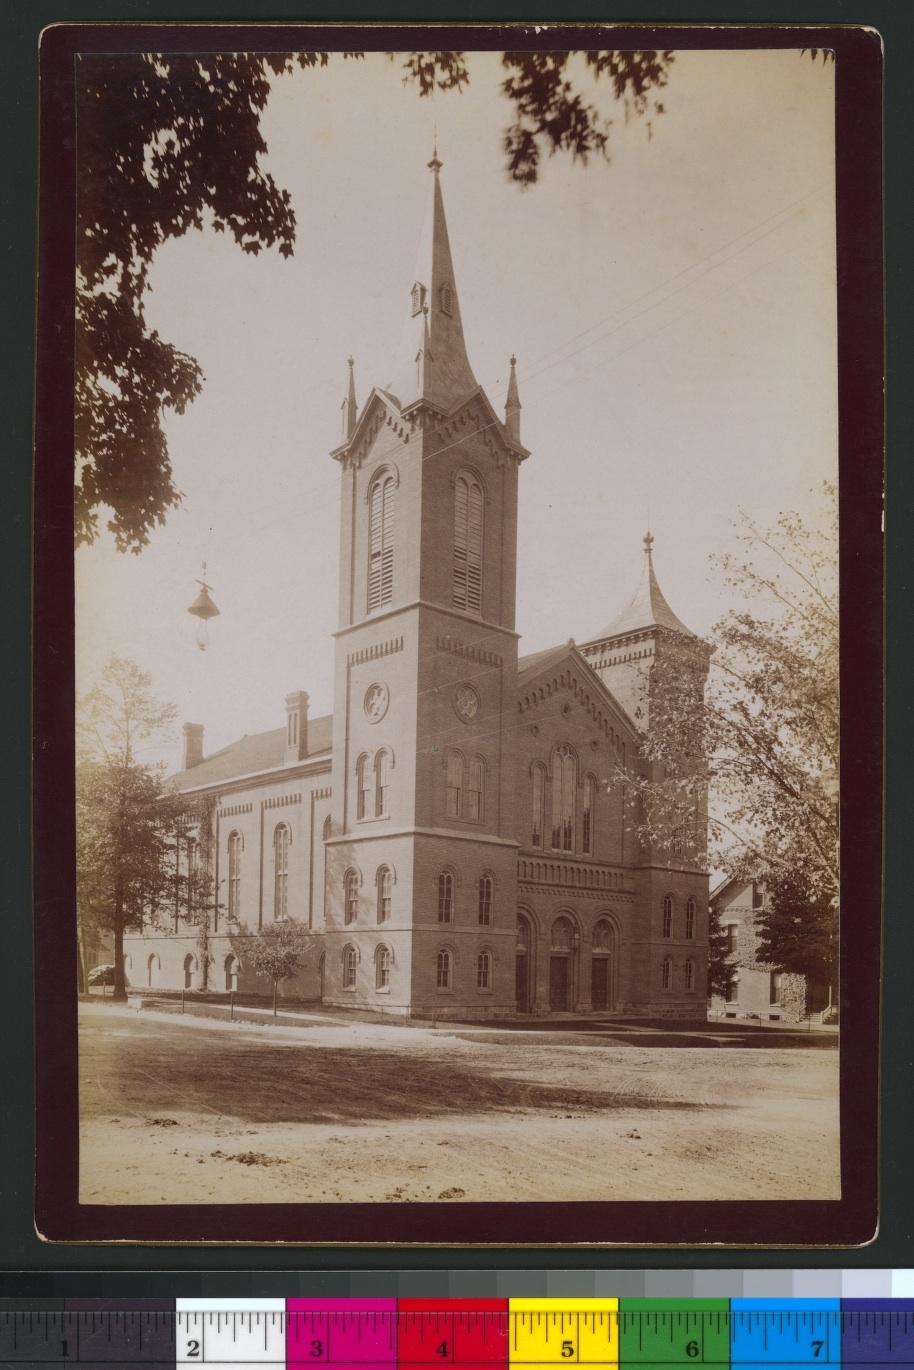 Preybyterian [sic] Church -- Huron & Division Sts. 1865 (ca.) (BL000923) image